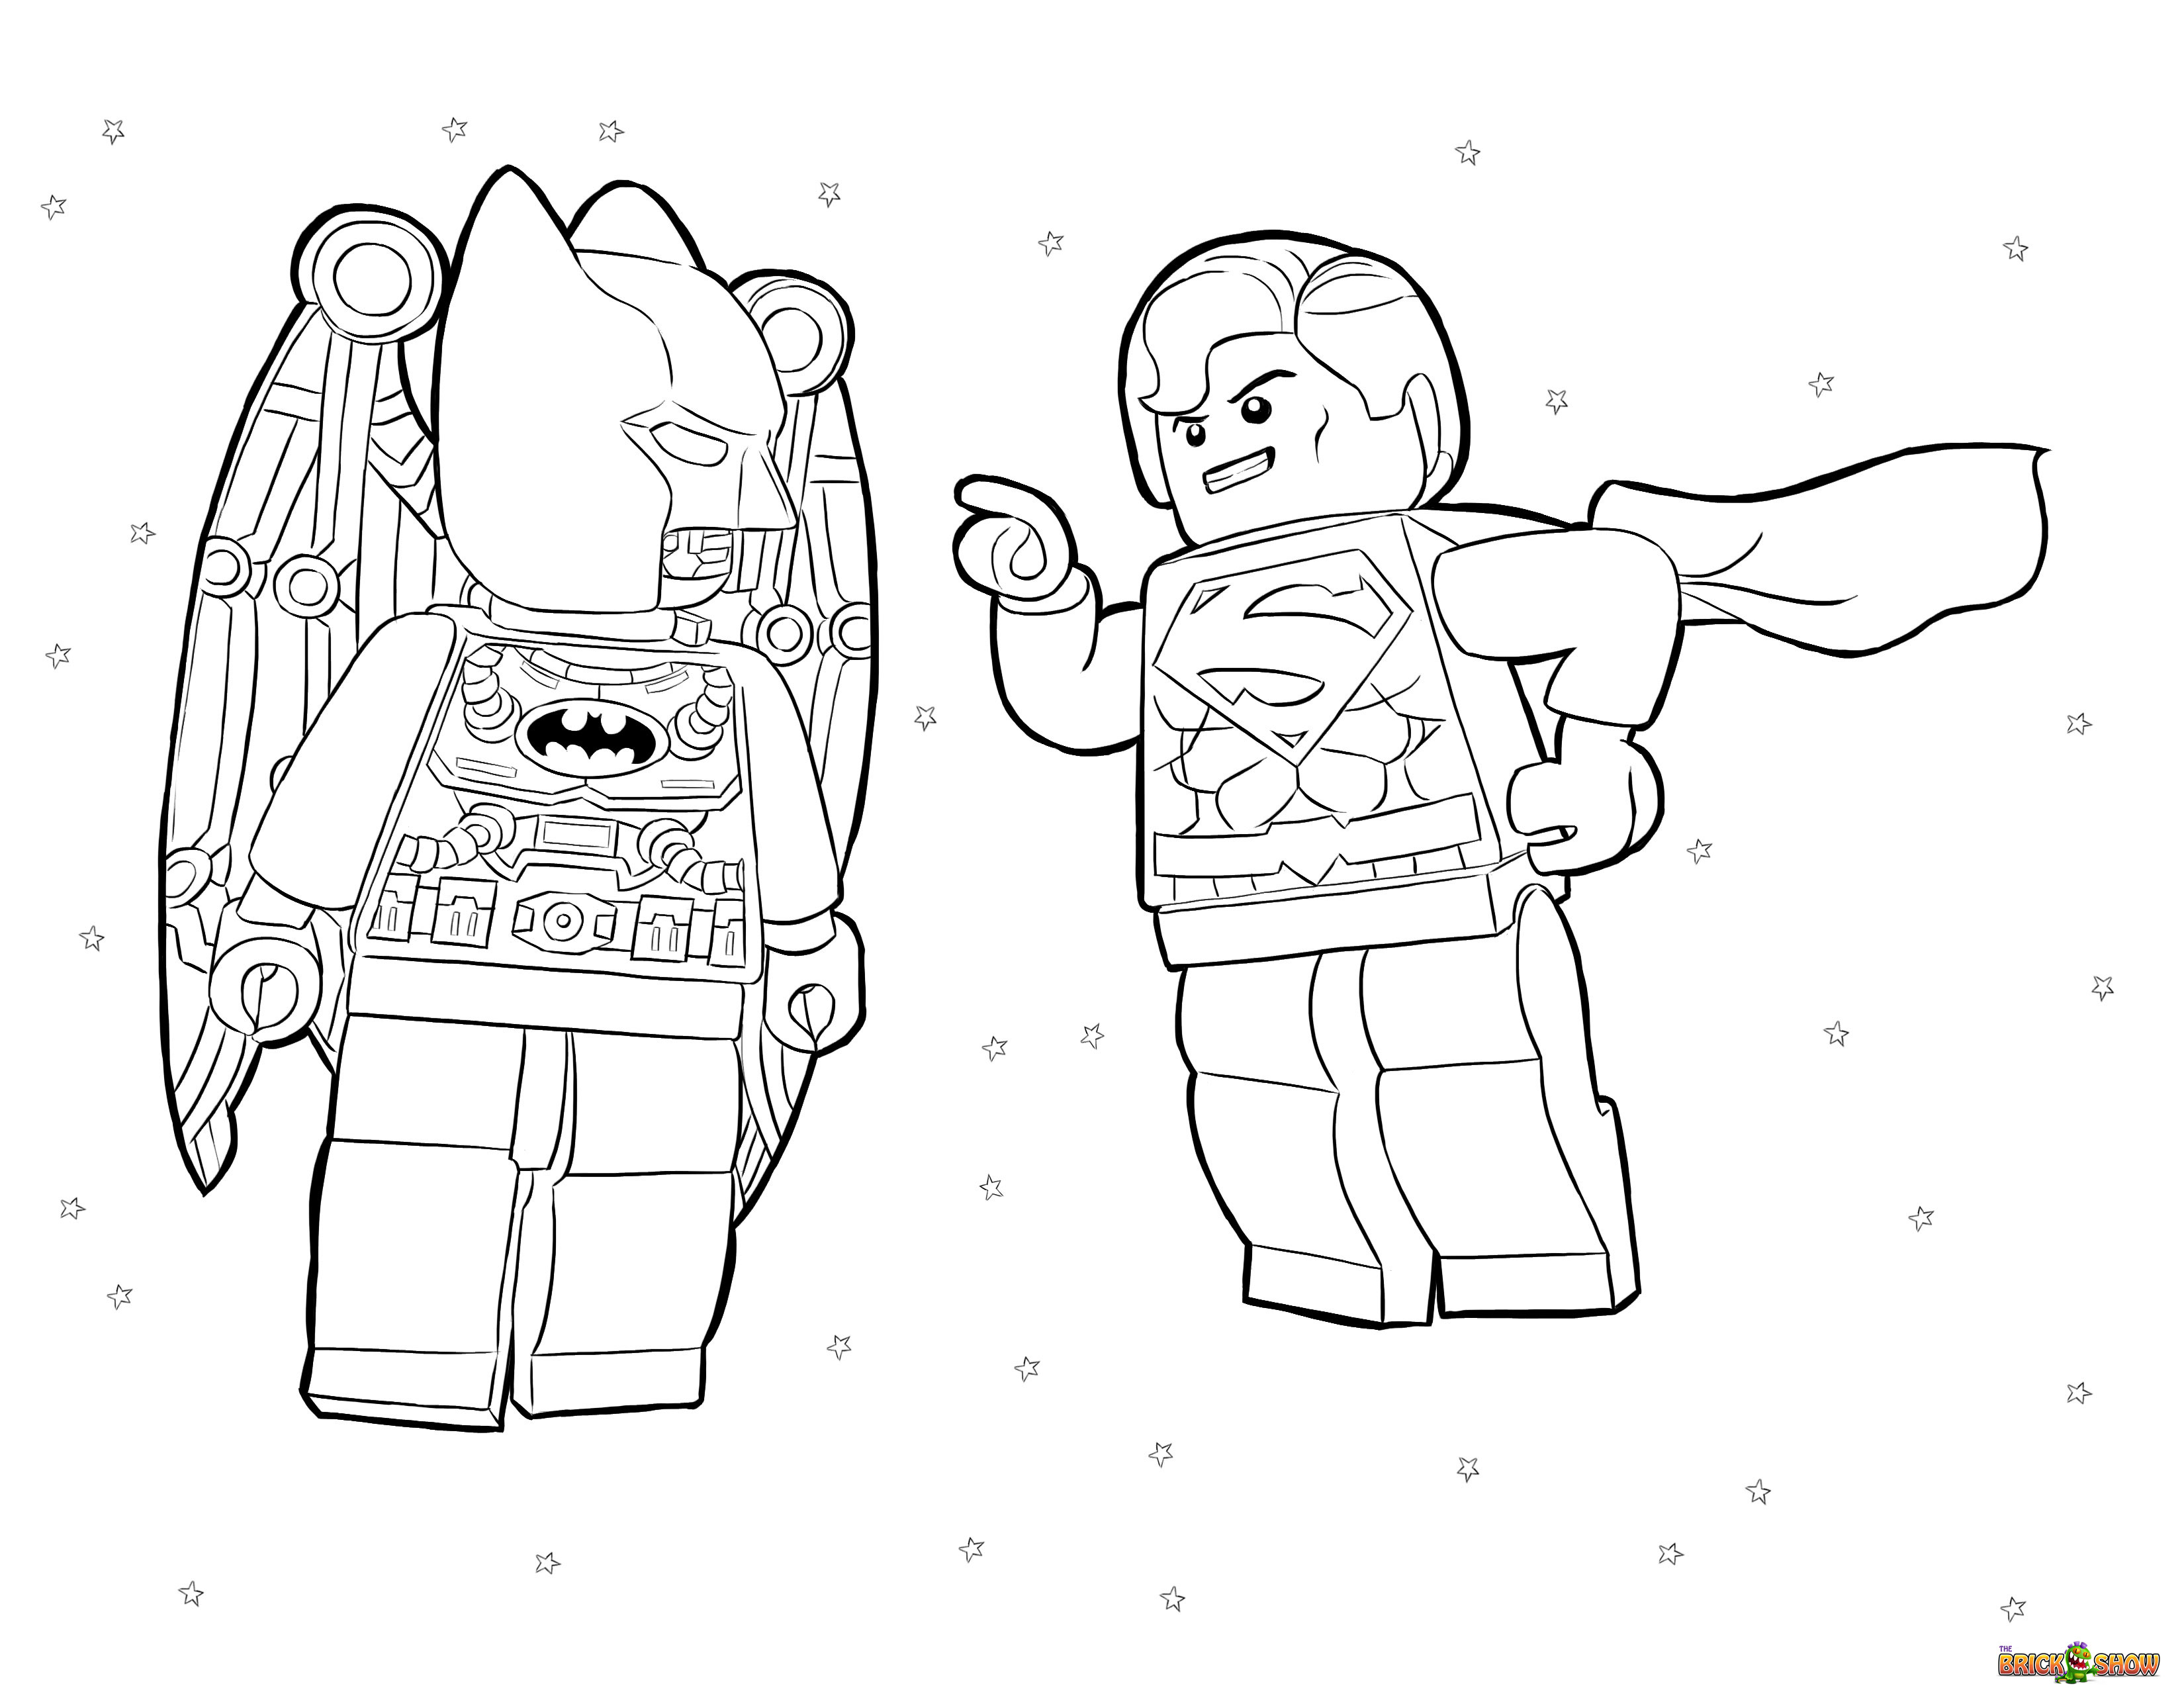 lego superman lego superman coloring pages to download and print for free lego superman 1 1